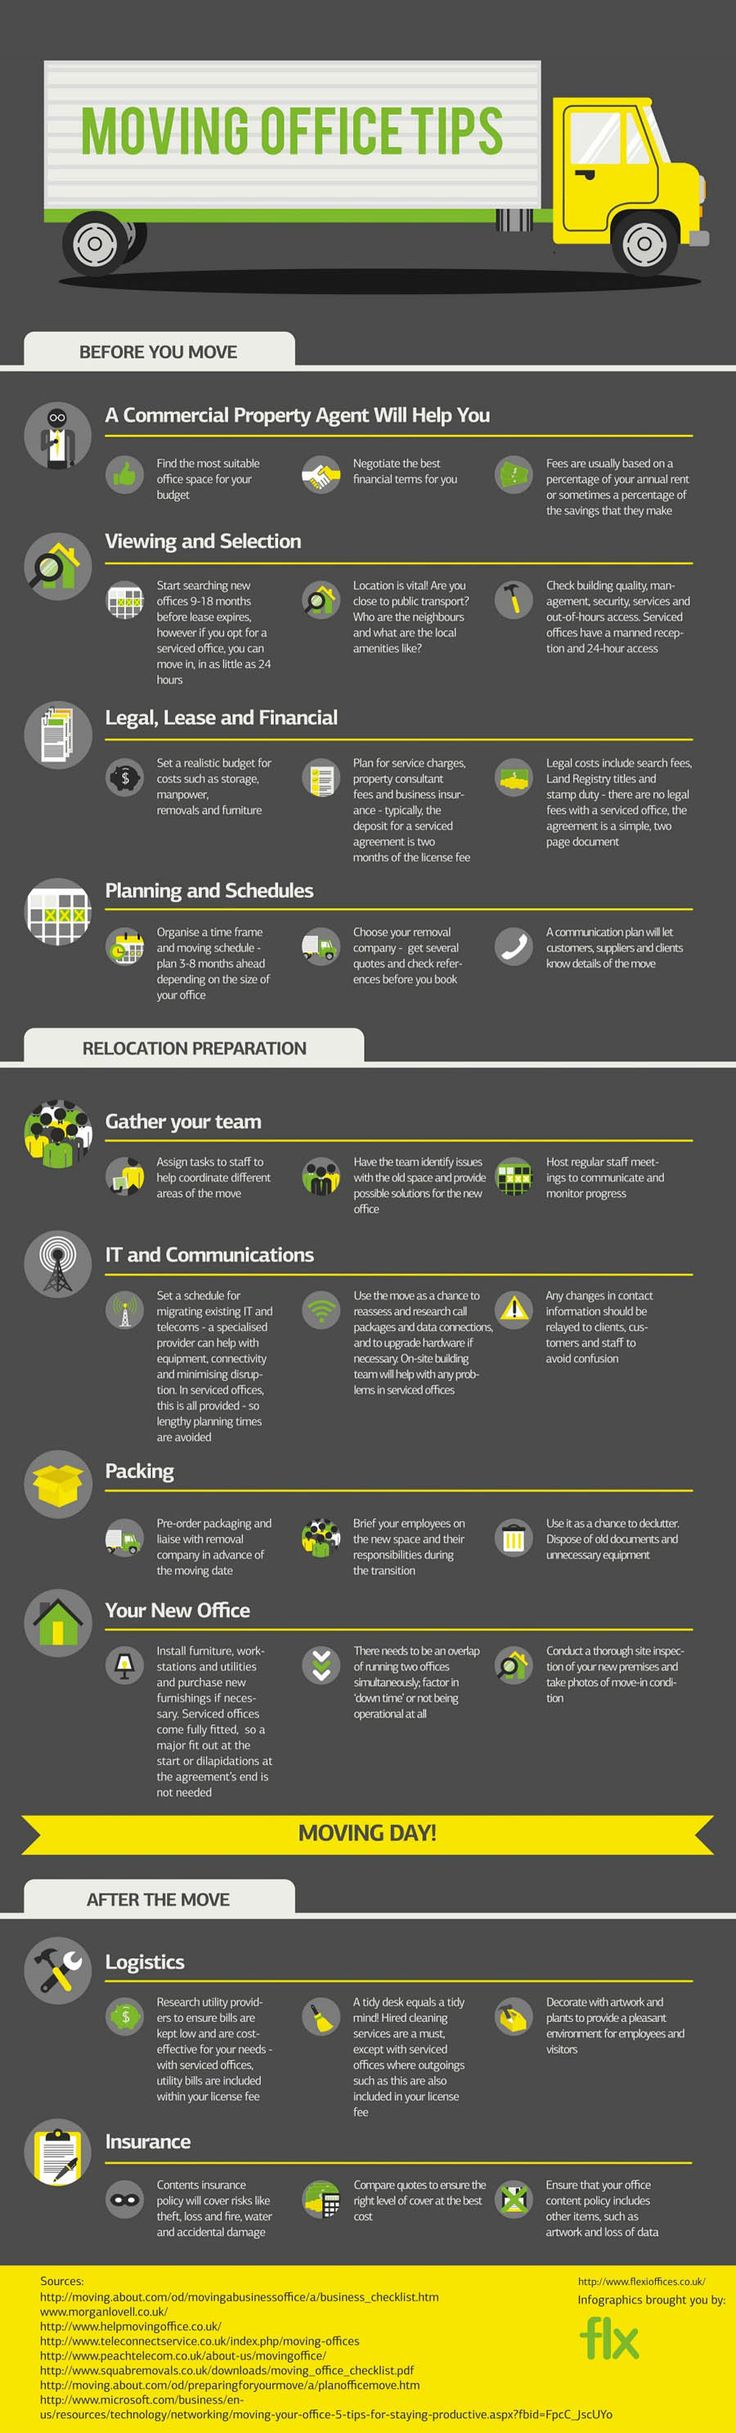 Infographic: Moving Offices Checklist